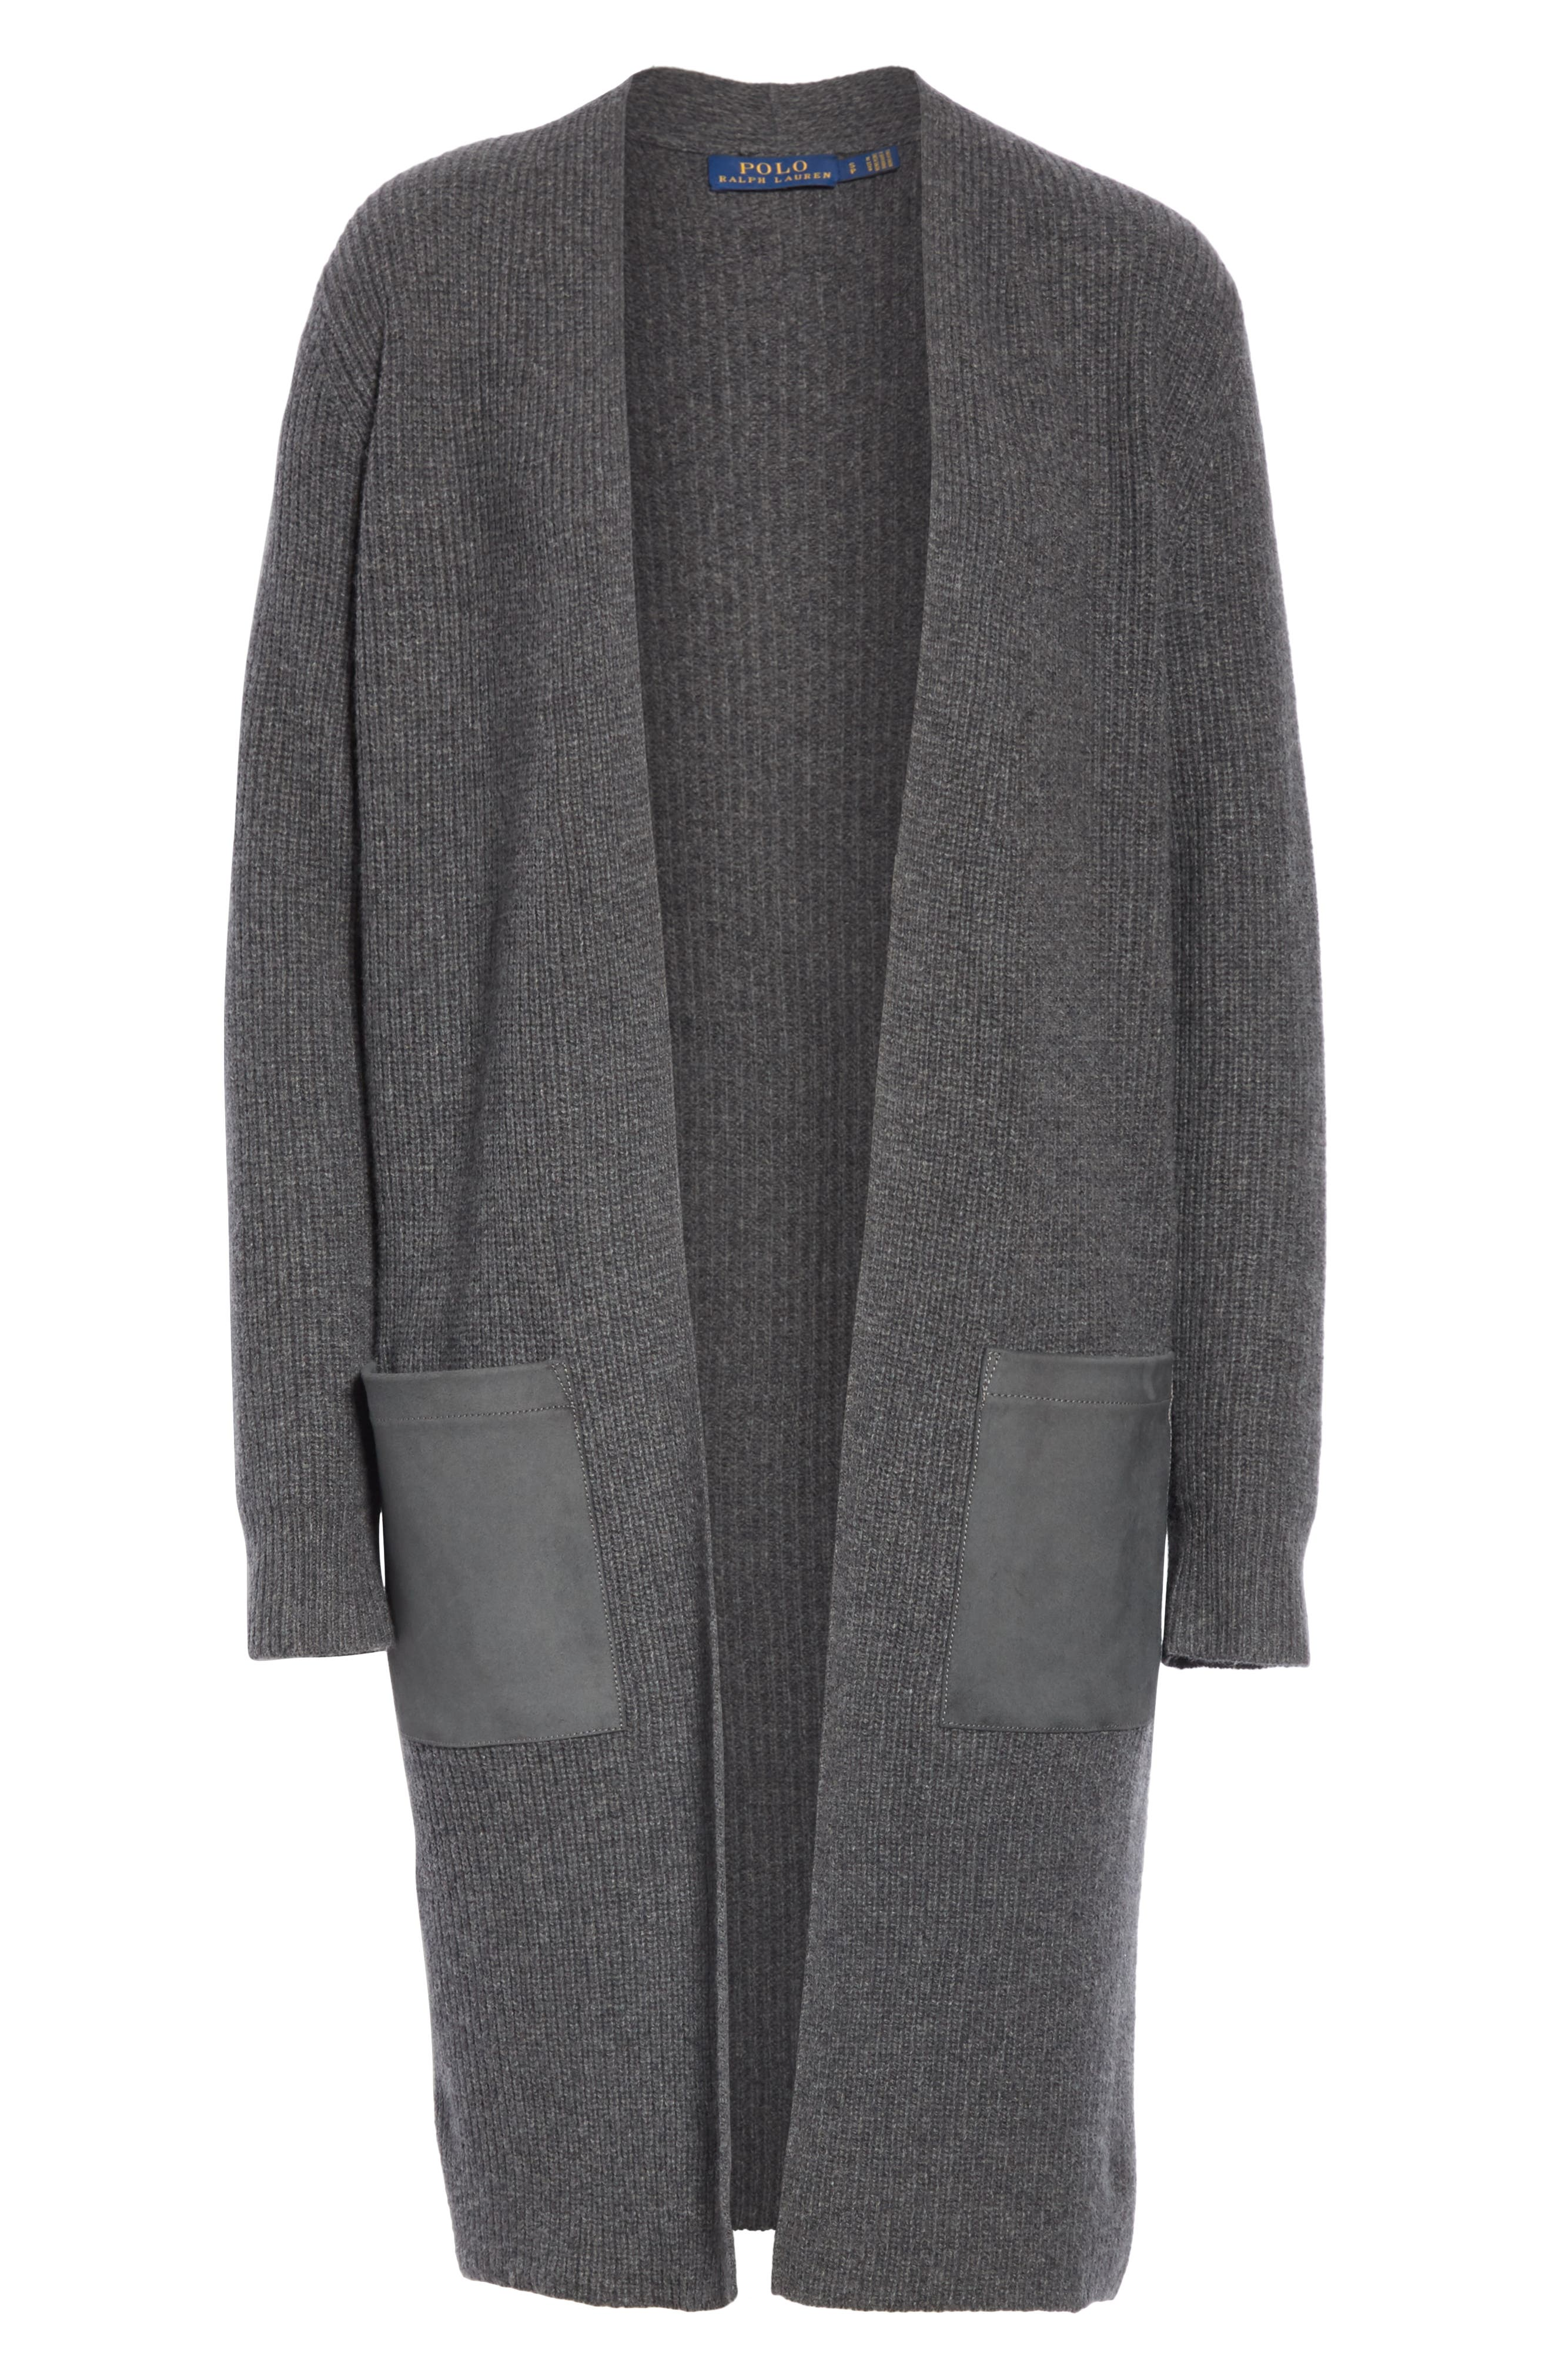 Long Wool & Cashmere Sweater,                             Alternate thumbnail 2, color,                             020